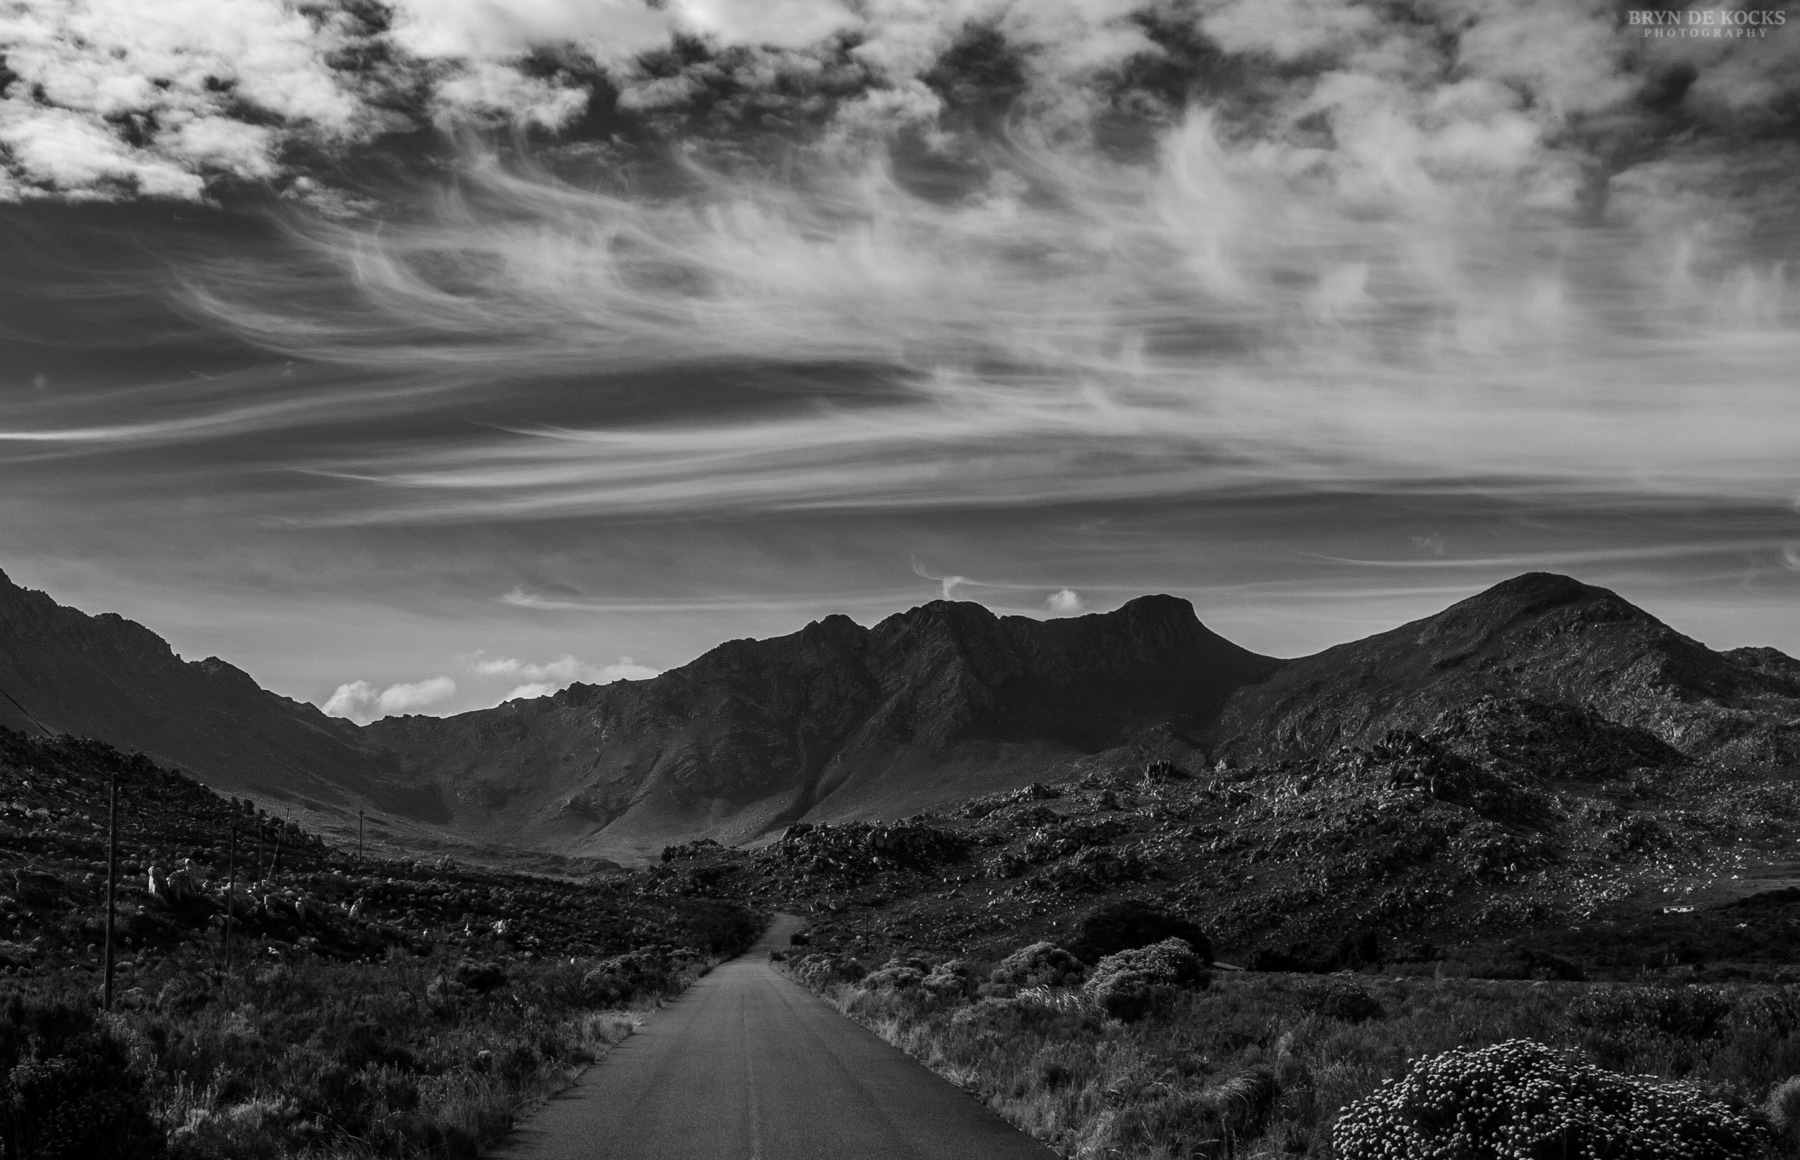 Black and White Landscape With Cirrus Clouds